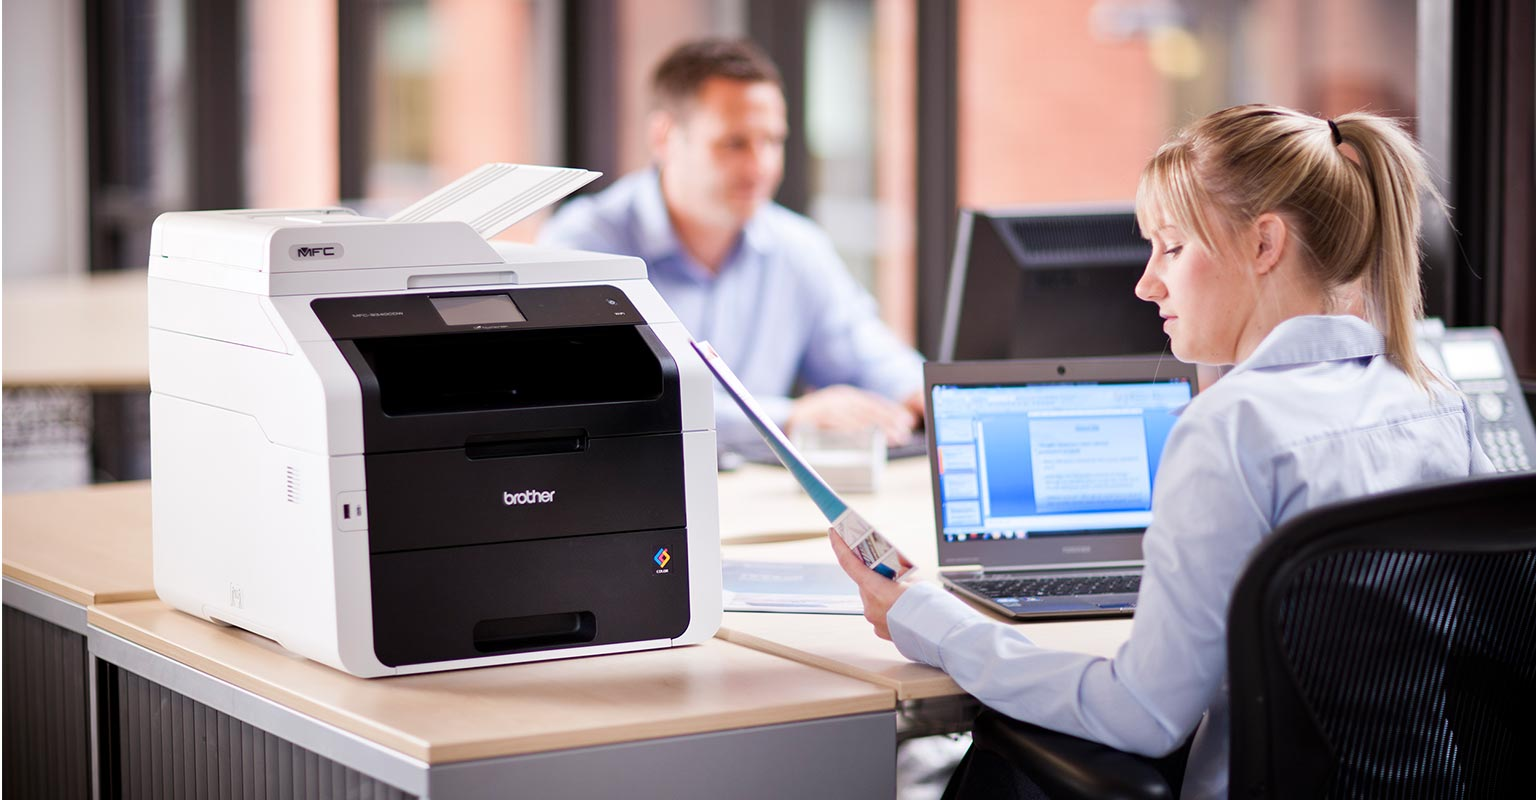 Office staff using printsmart to manage their printing environment